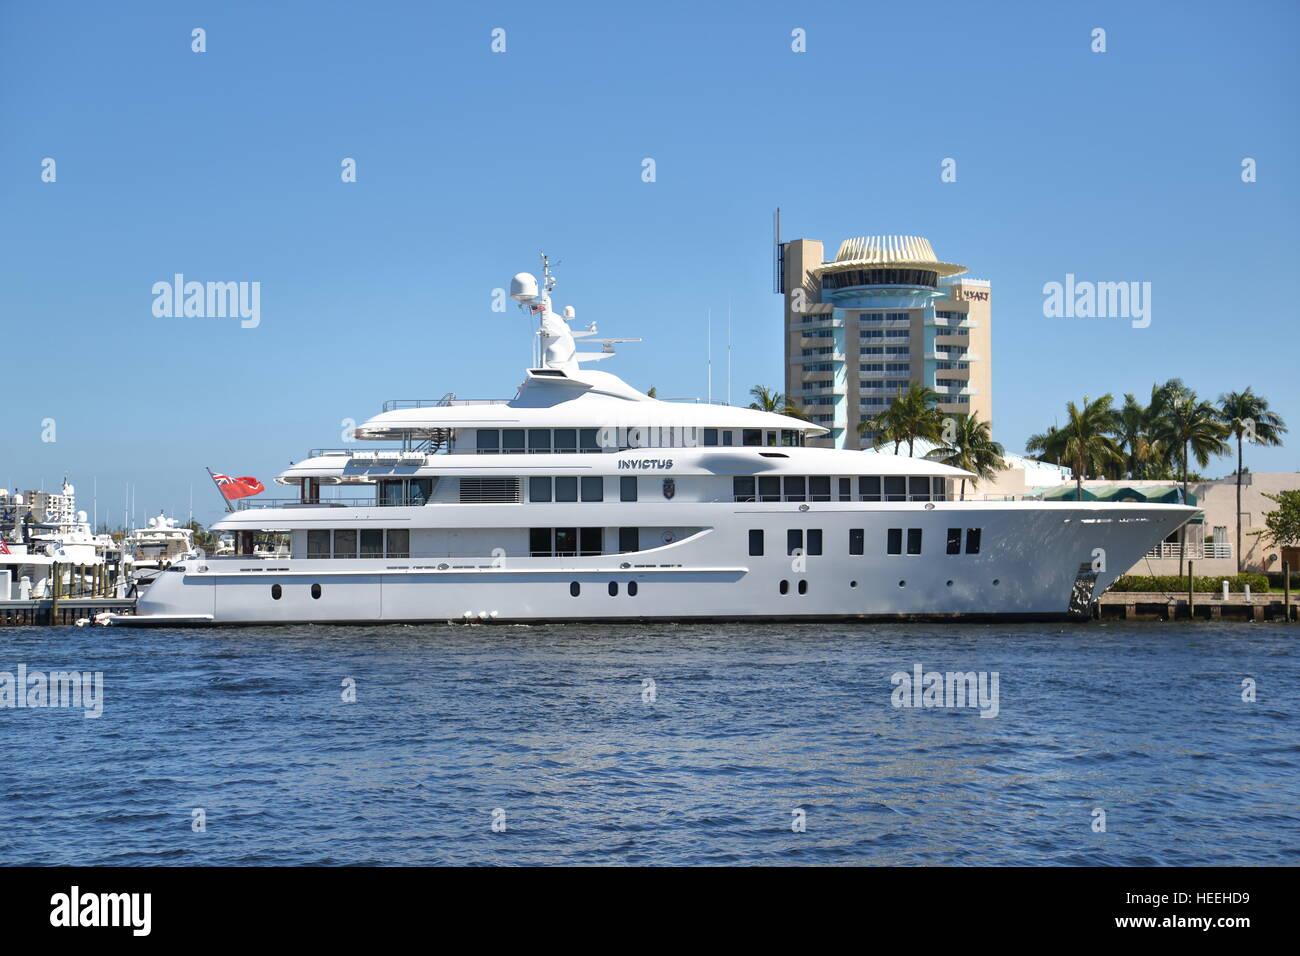 The luxury yacht Invictus moored at Fort Lauderdale, Florida, USA in front of the Hyatt hotel - Stock Image